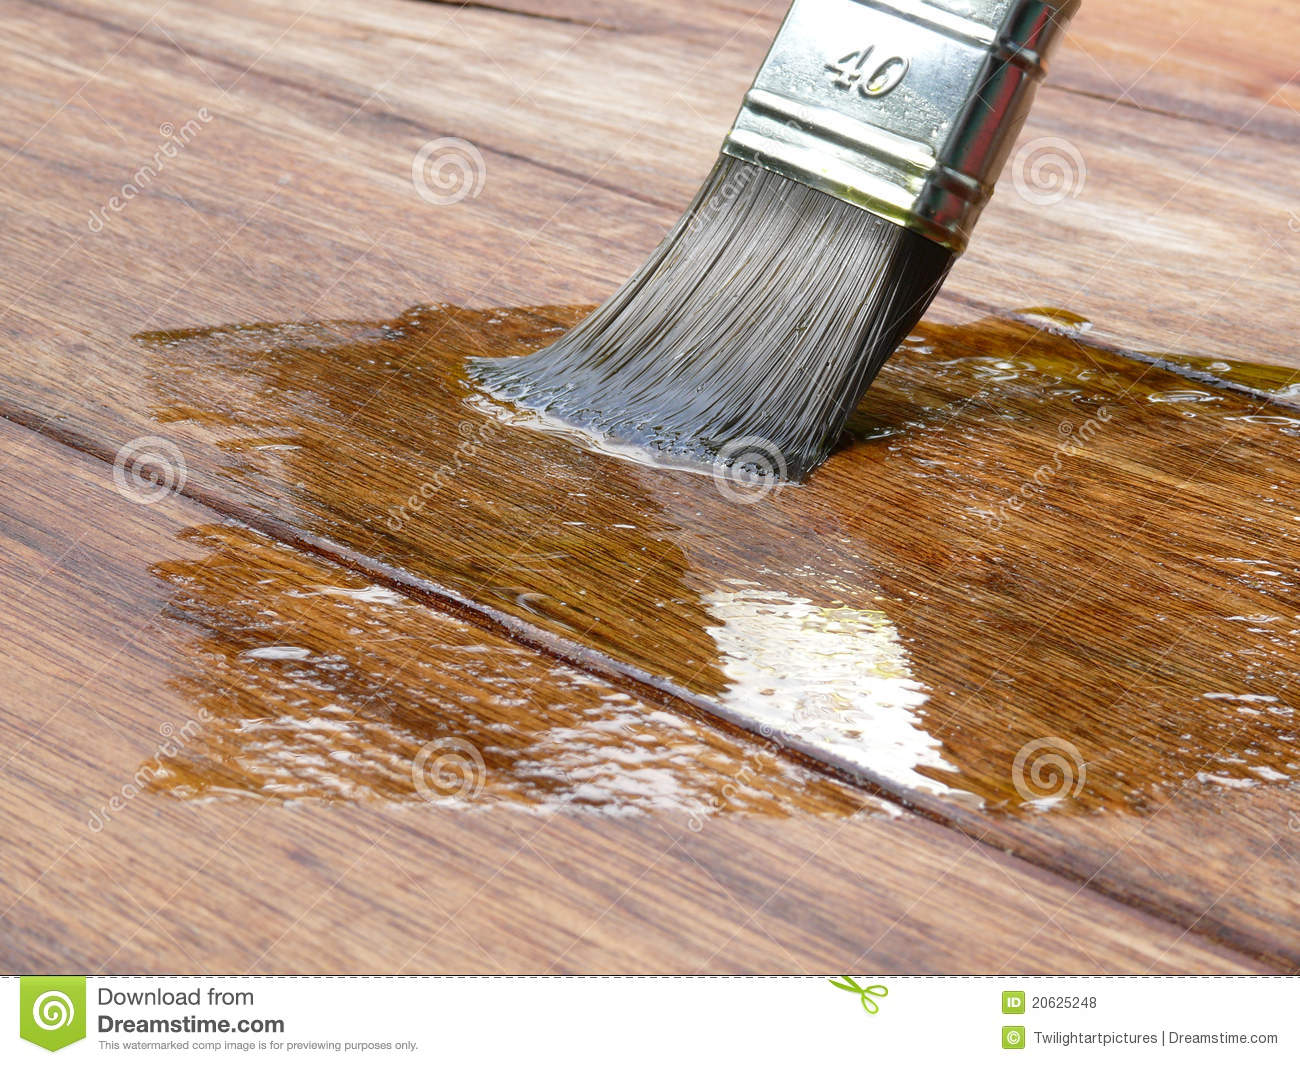 Holzdielen Lackieren Painting Wood Stock Photo. Image Of Paint, Exterior